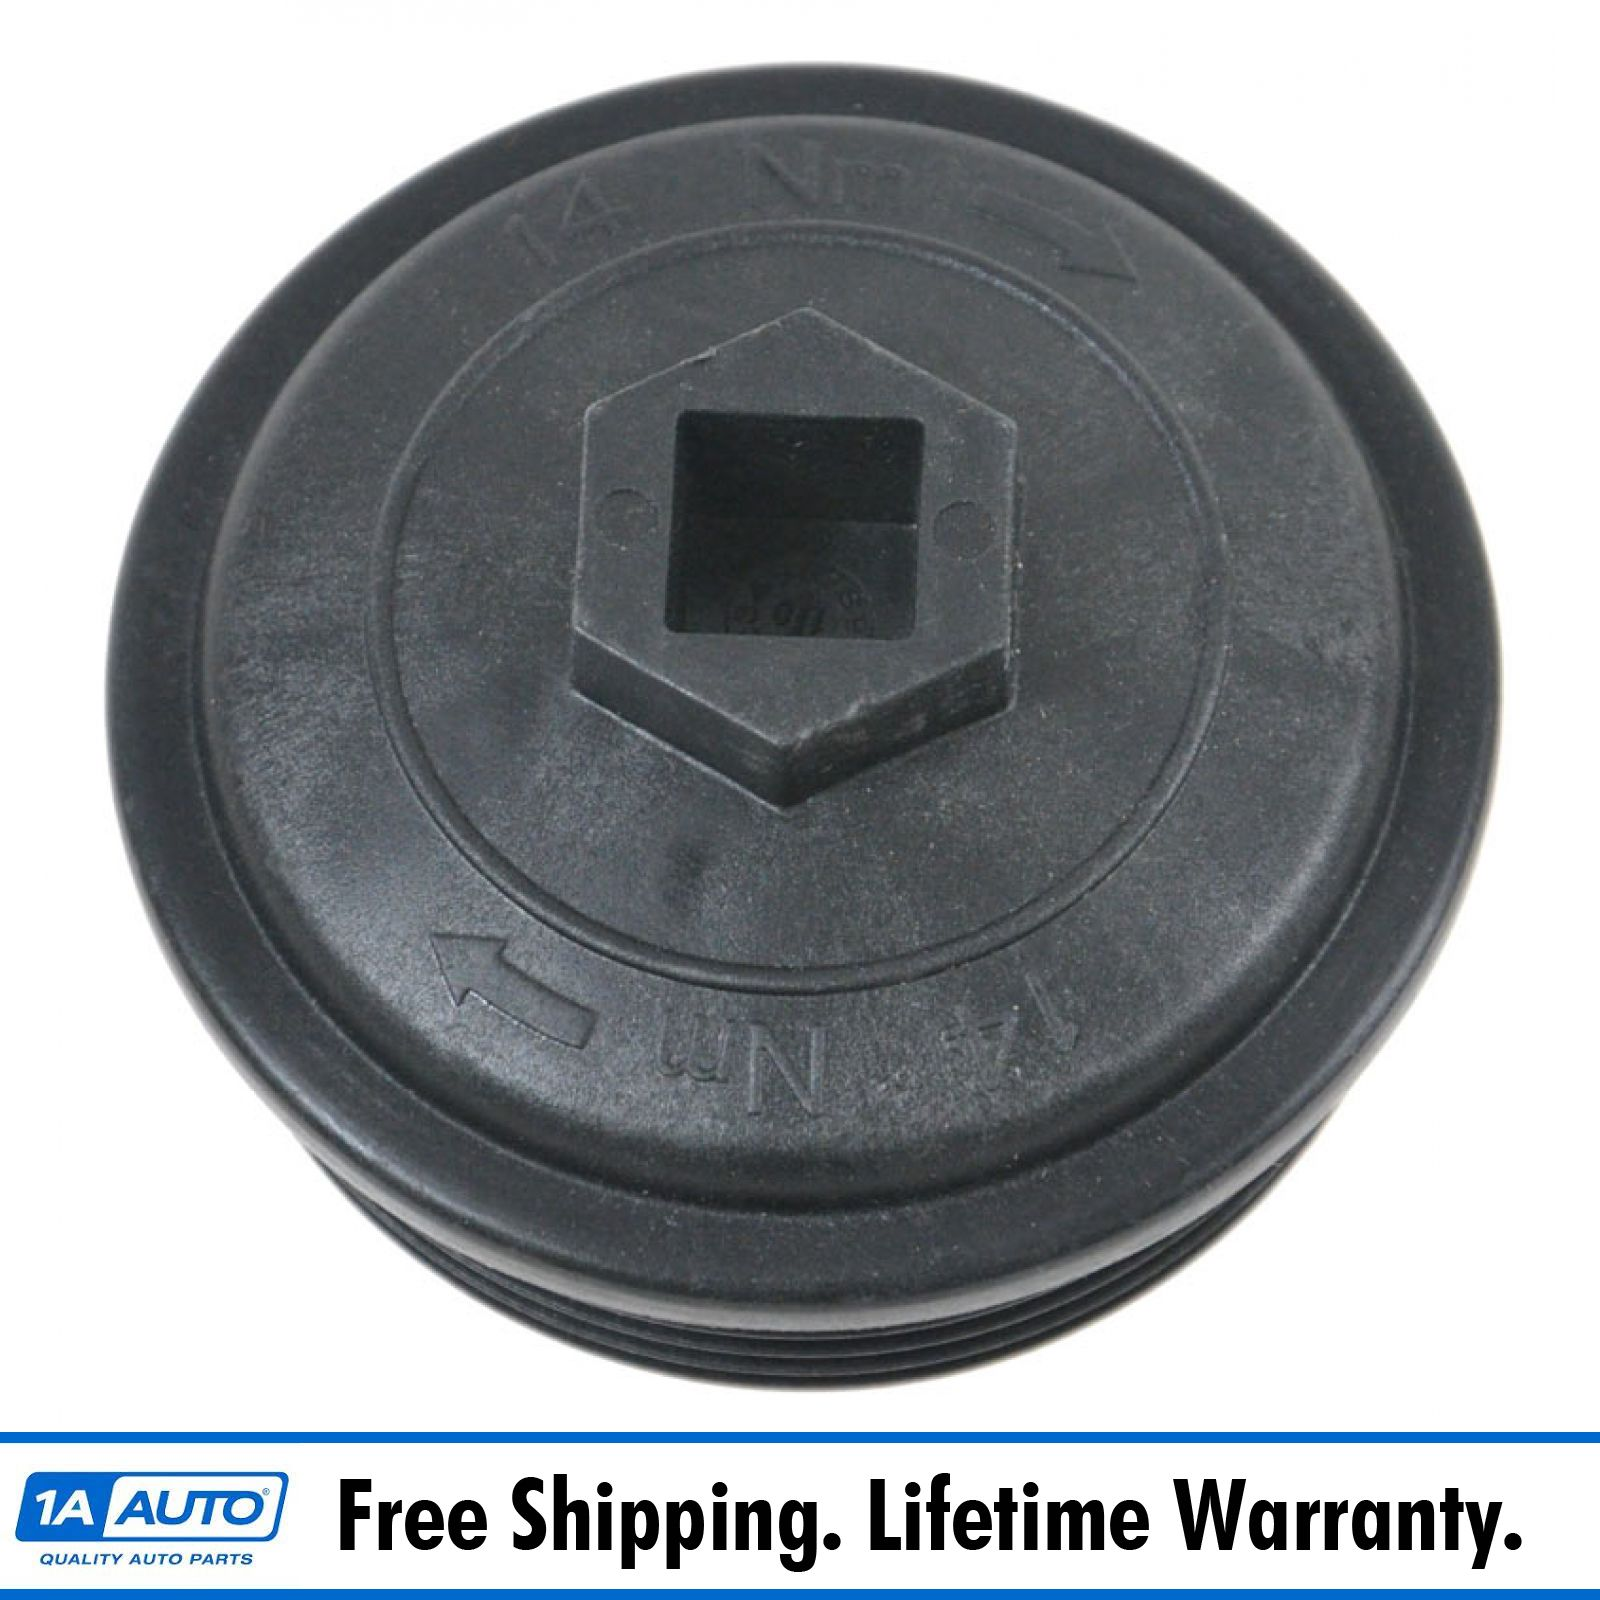 Dorman Fuel Filter Cap Cover For Ford F250 F350 F450 F550 Excursion 6 0 Updated 60l Diesel